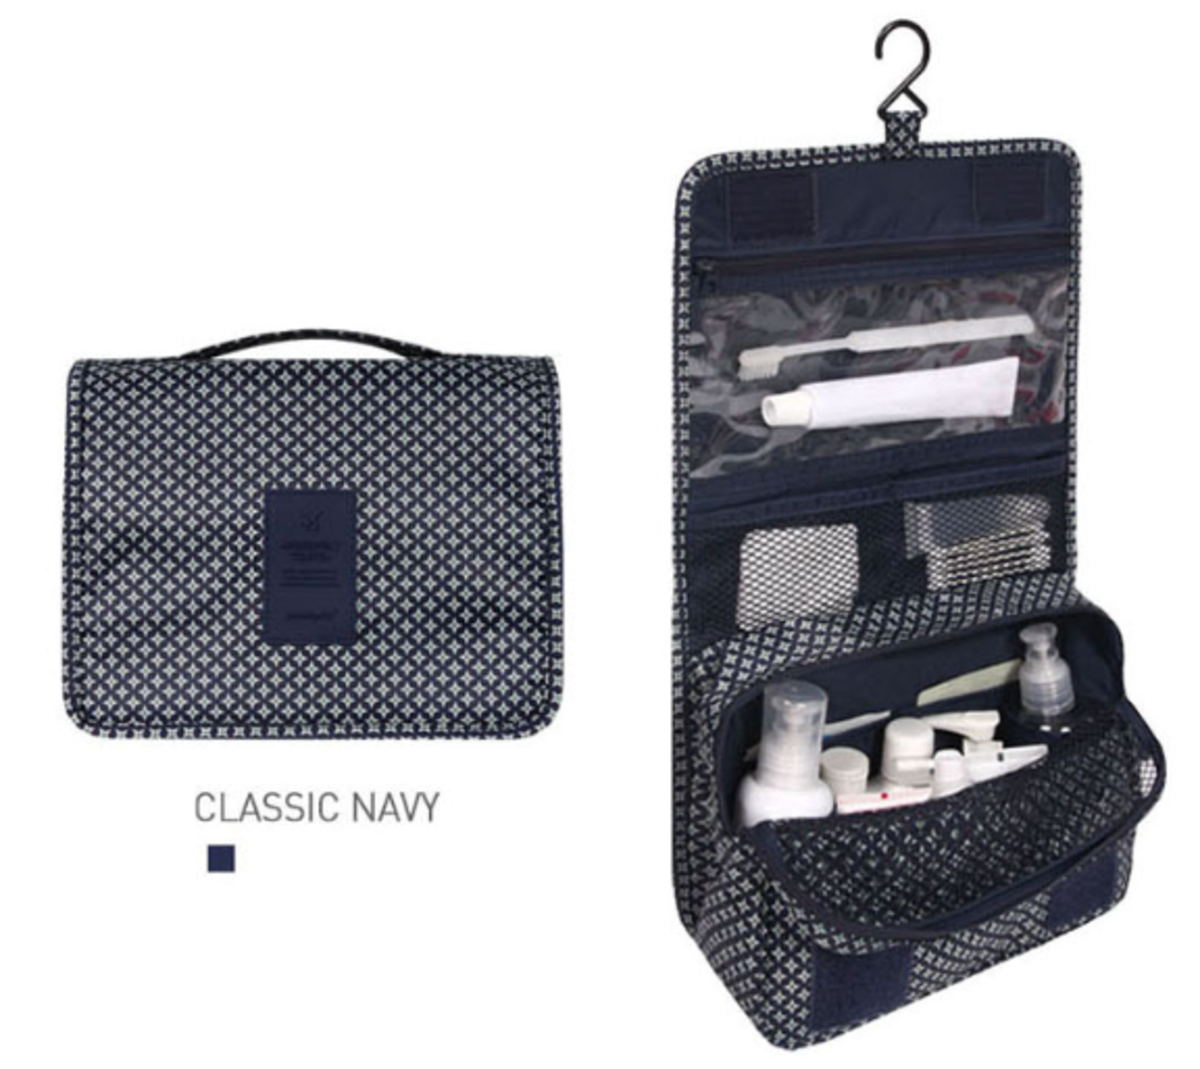 Korean Style Travel Bag (Classic Navy)